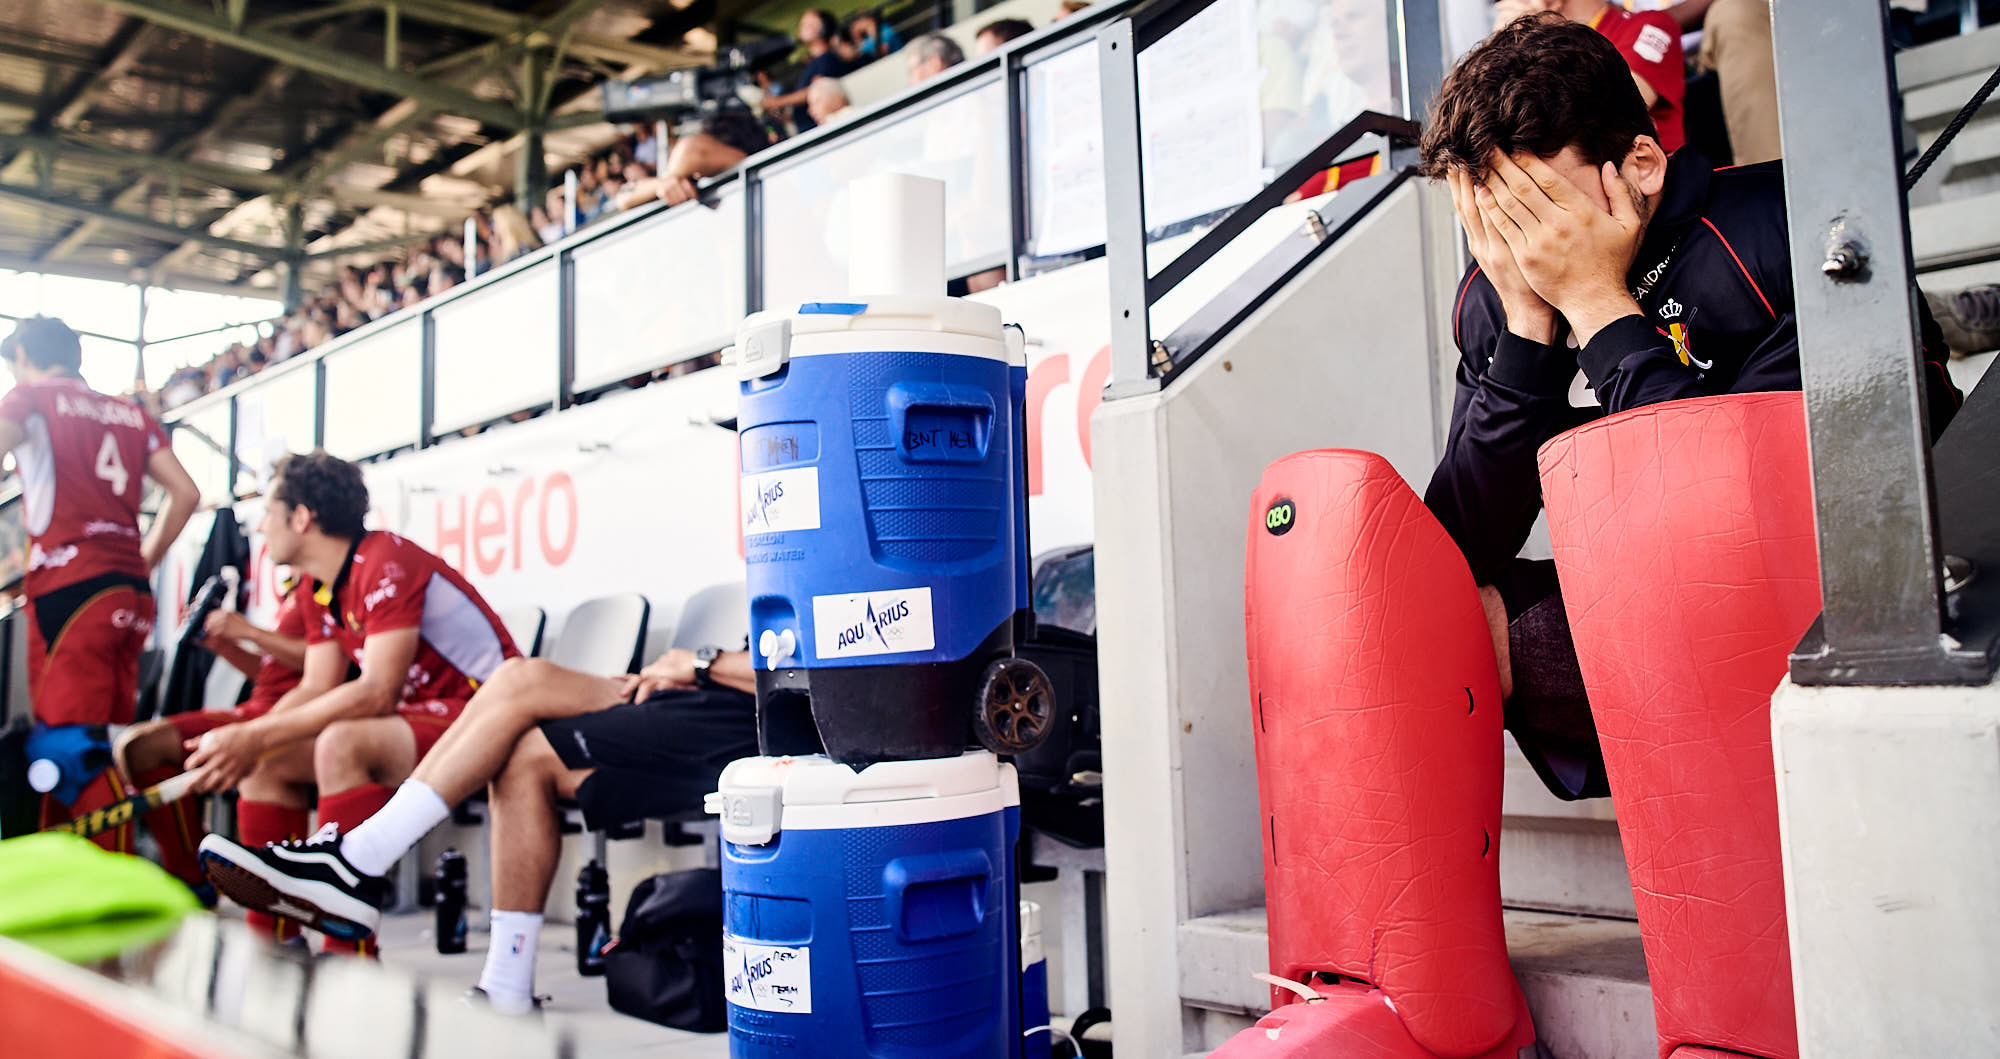 Belgium national team goalkeeper disappointed during 2019 FIH Pro League finals in Amsterdam